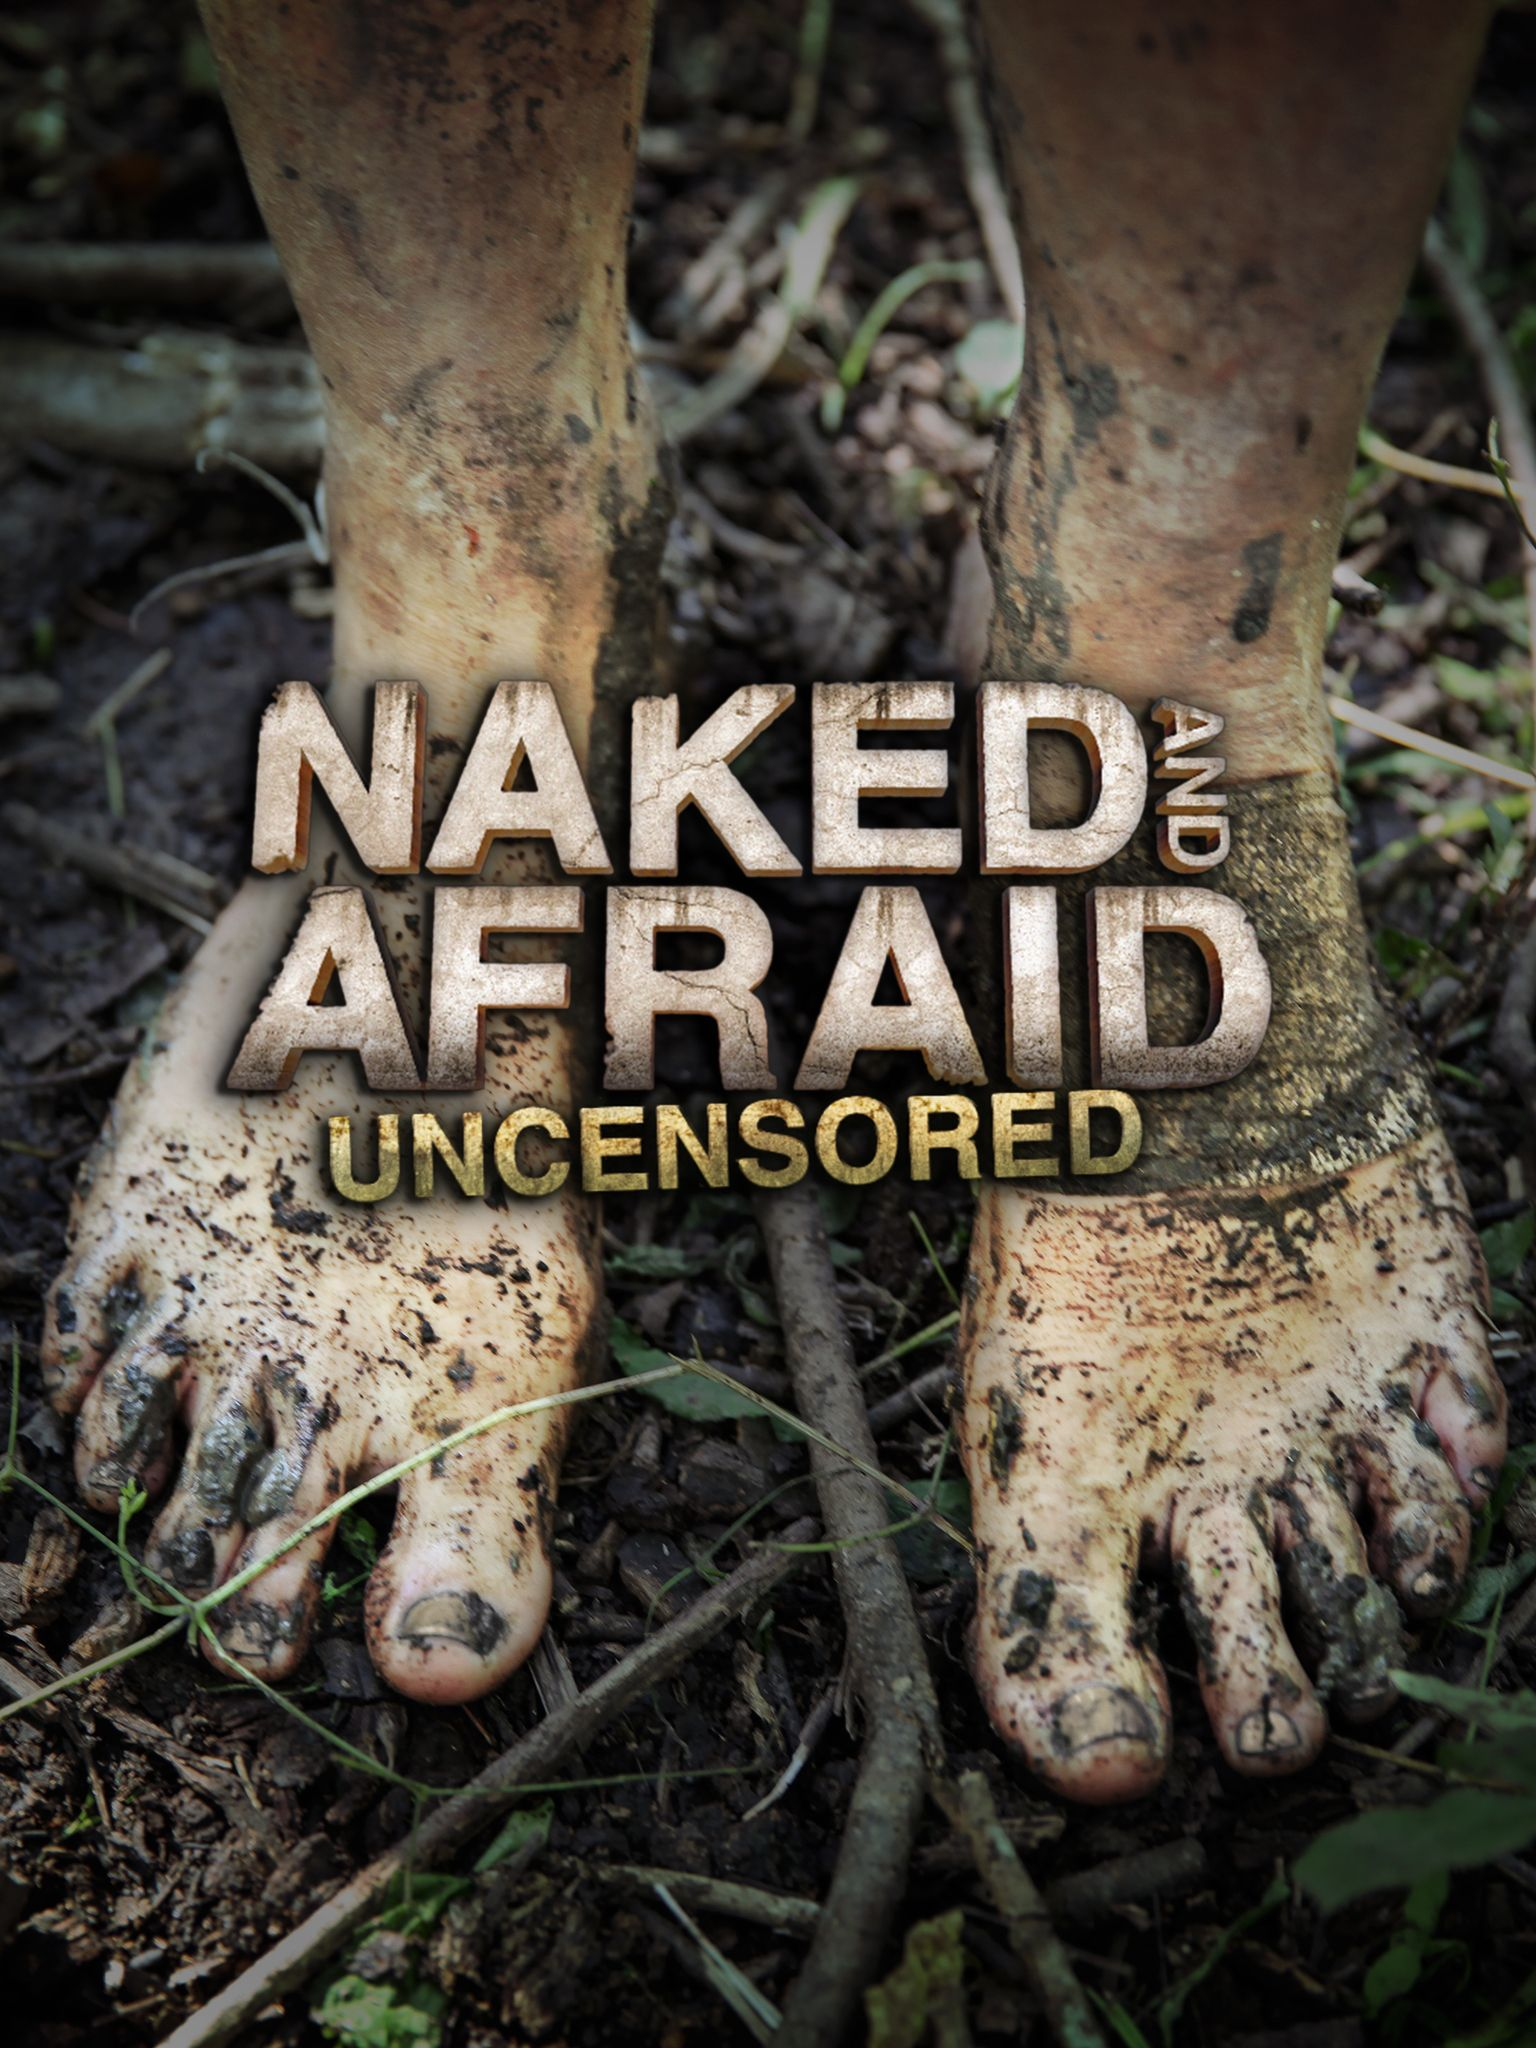 Naked and afraid unsenseored